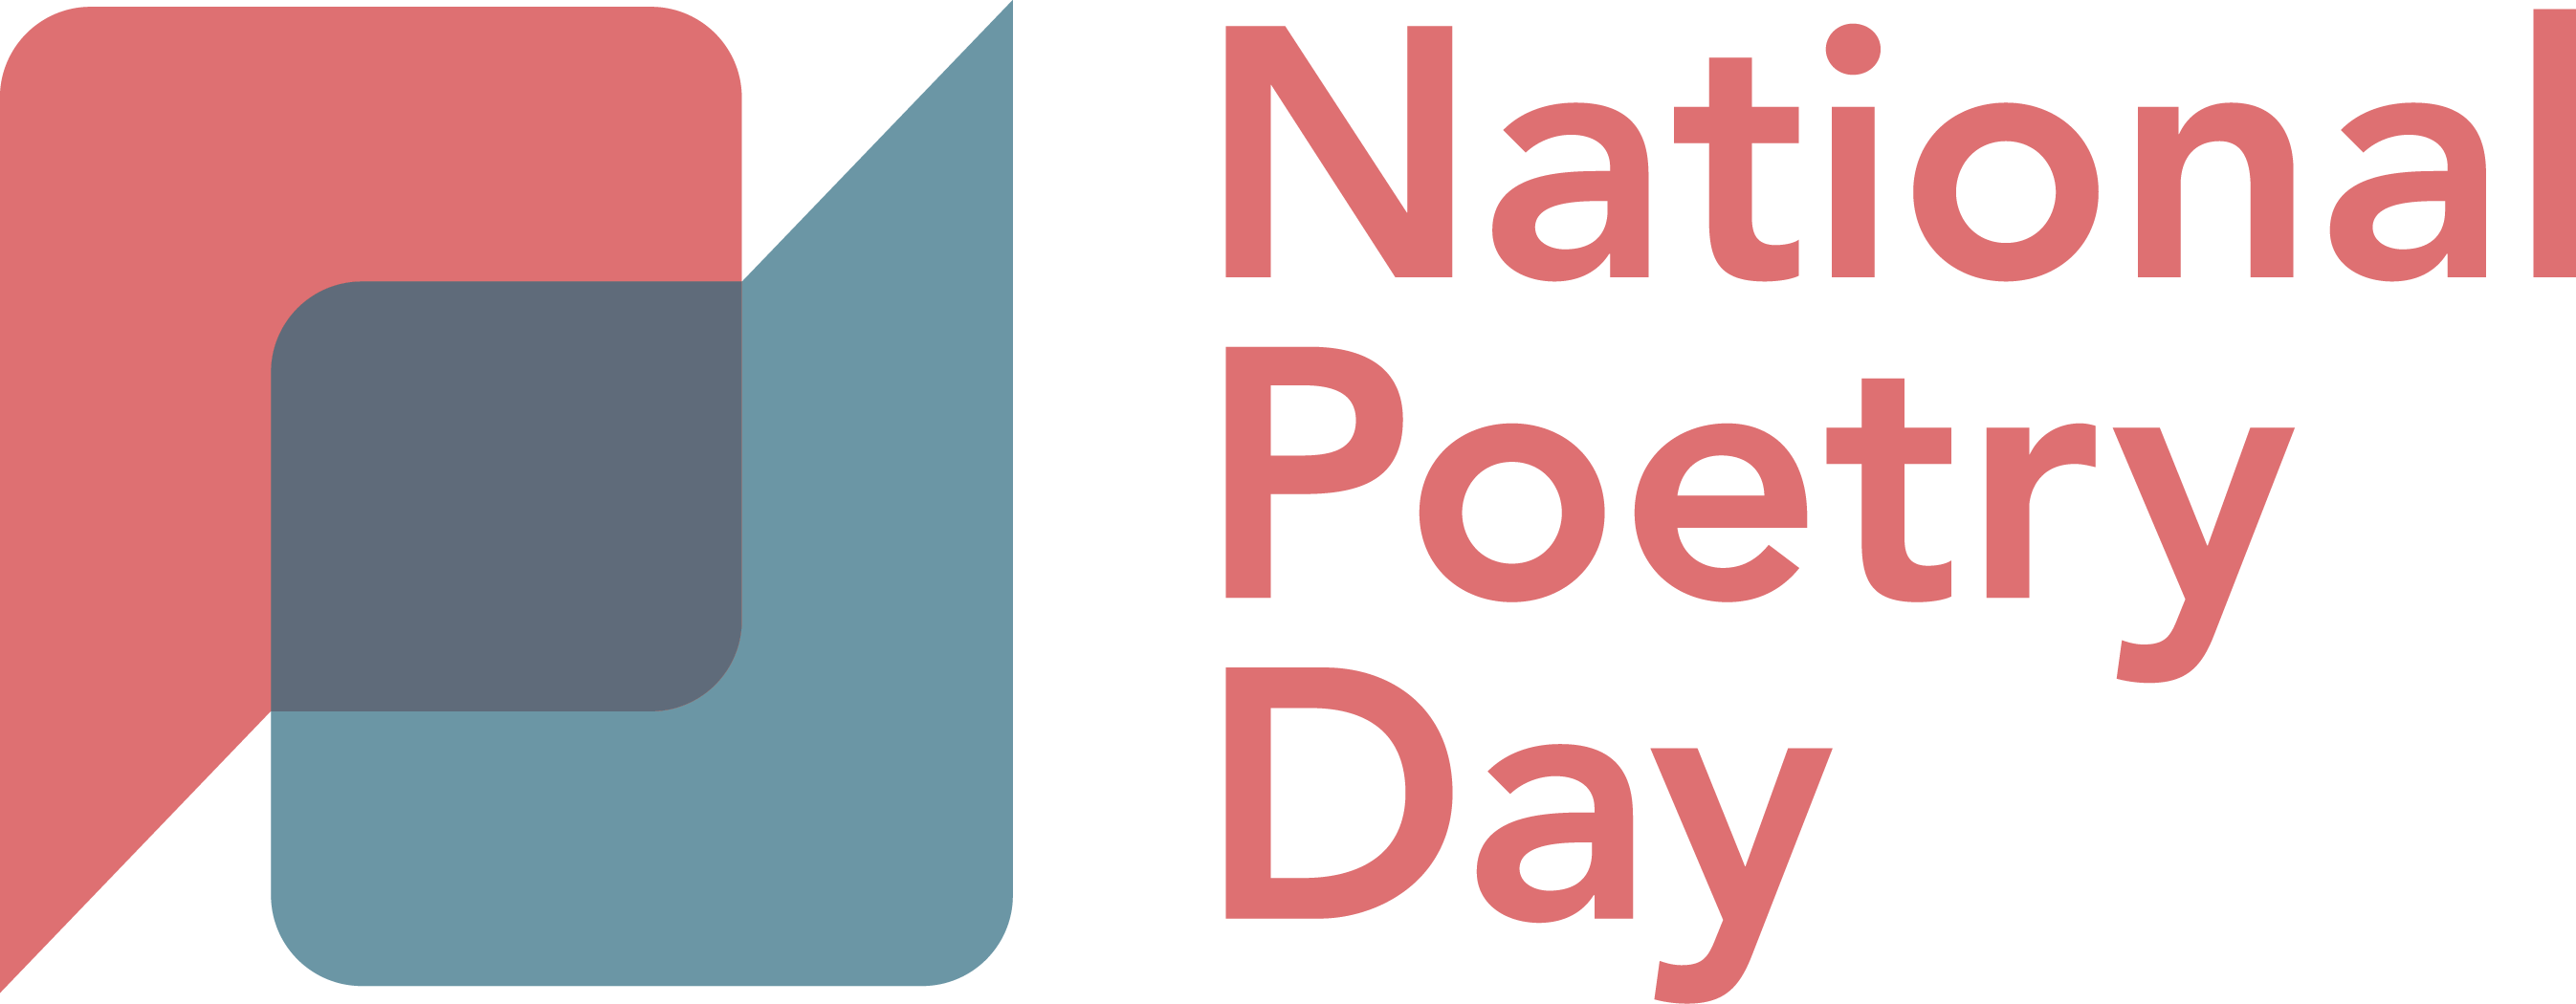 national poetry day in uk, remembering poetry, poetry, forward arts foundation